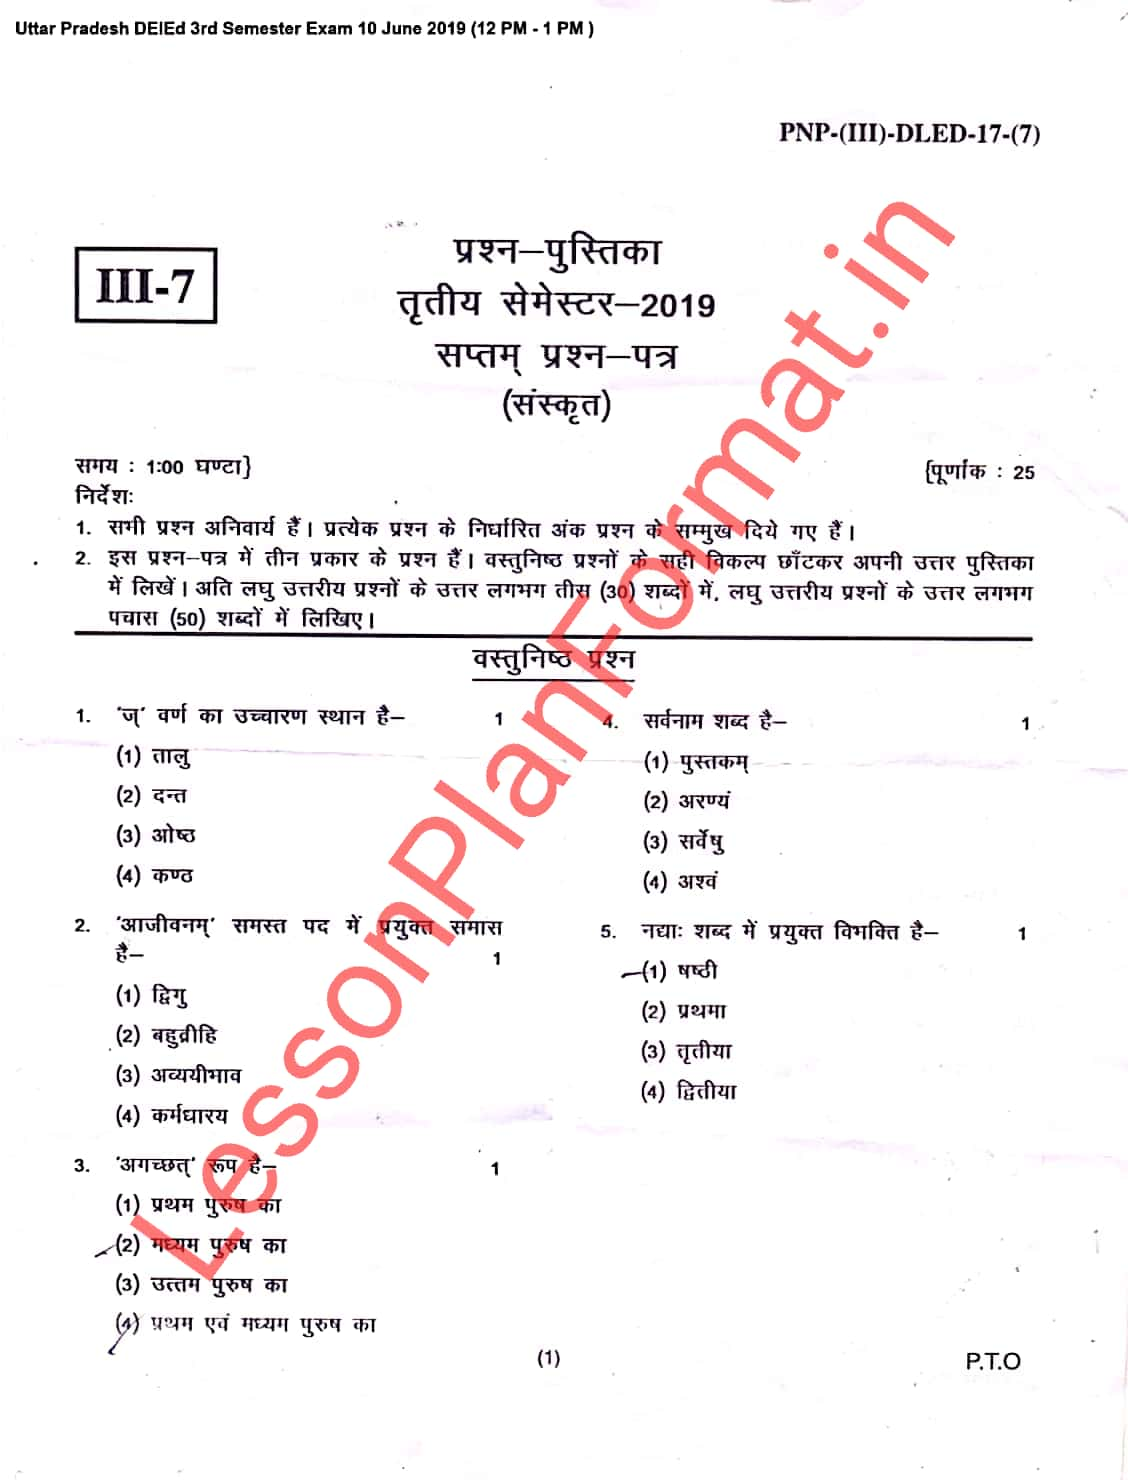 Deled 3rd Semester Sanskrit Previous Year Paper 2019